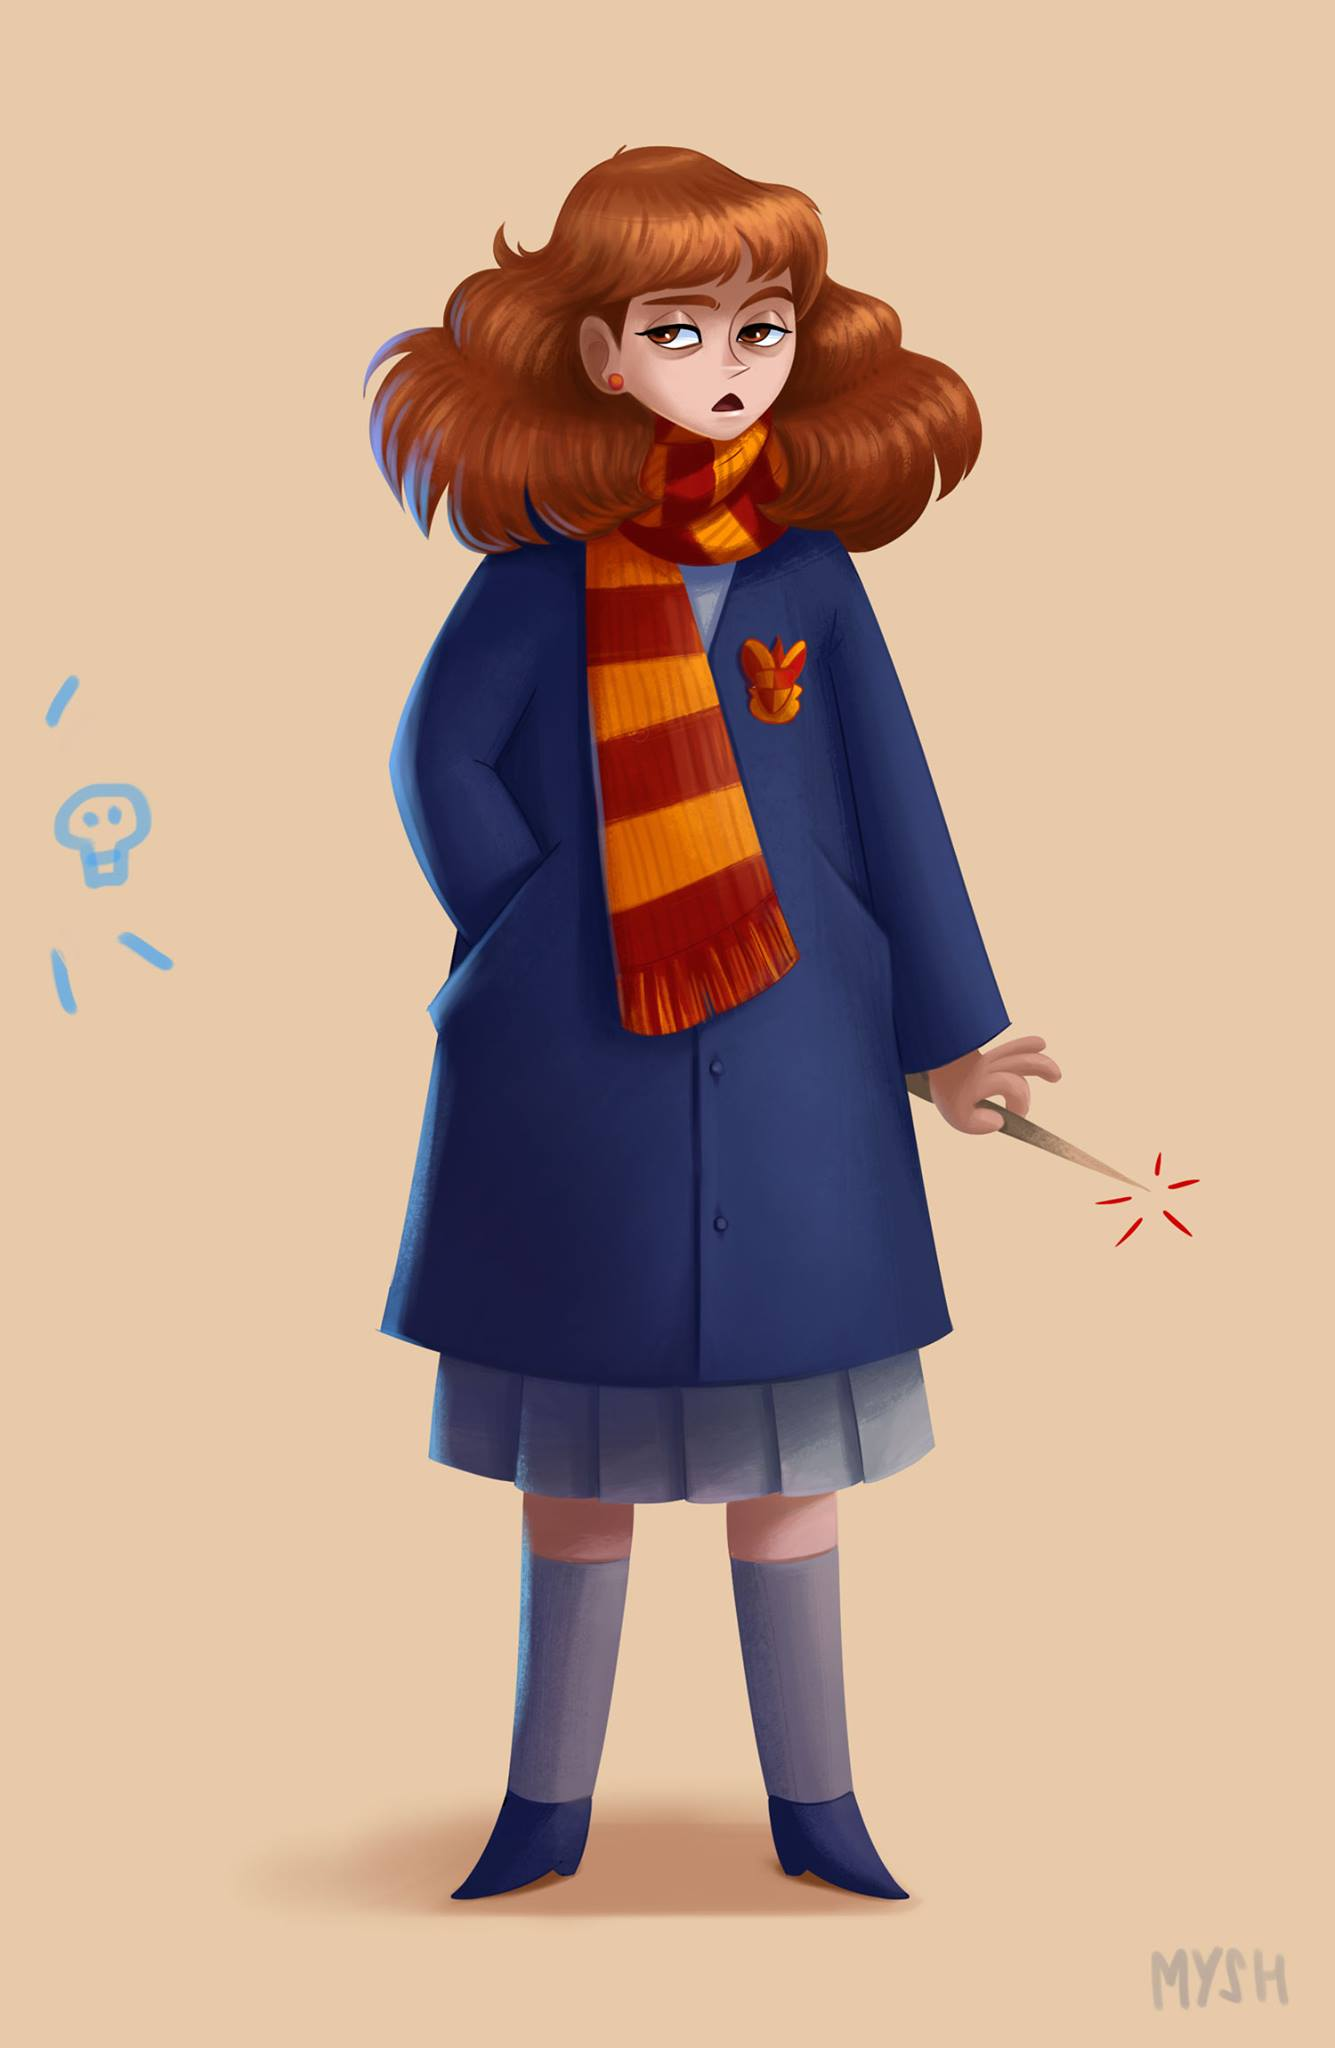 Harry Potter Character Design Challenge Facebook : Diaporama relooking de luxe pour harry potter et son